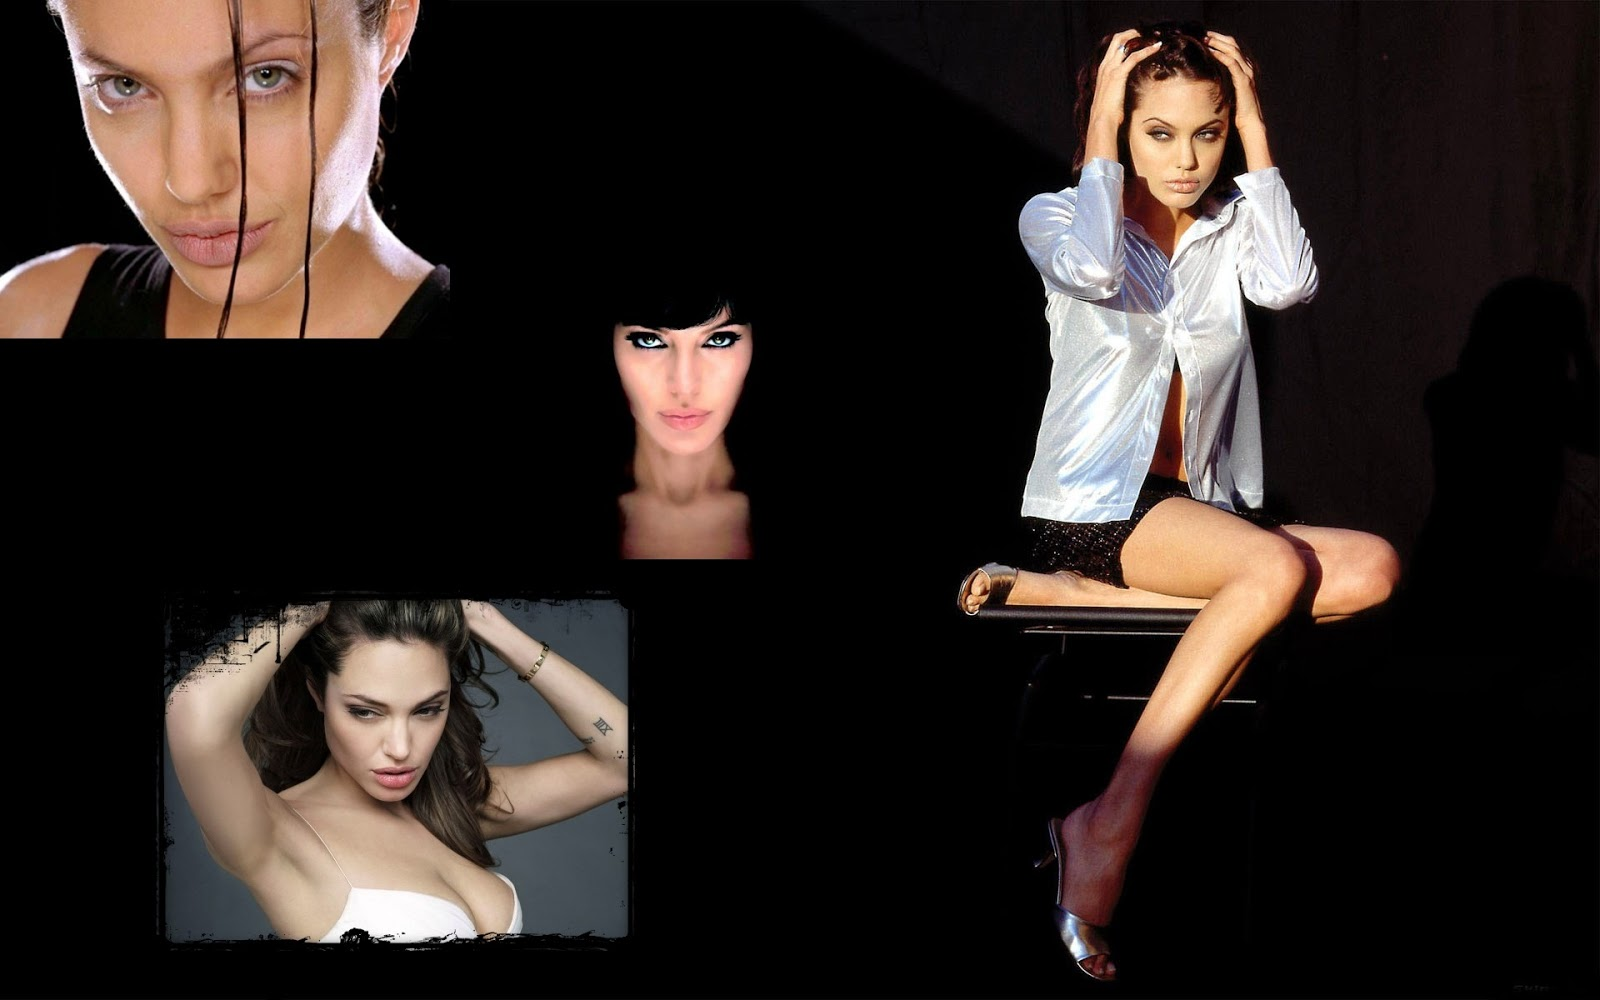 Angelina Jolie Gia Nude celebrity nude century: the most beautiful woman of our time?